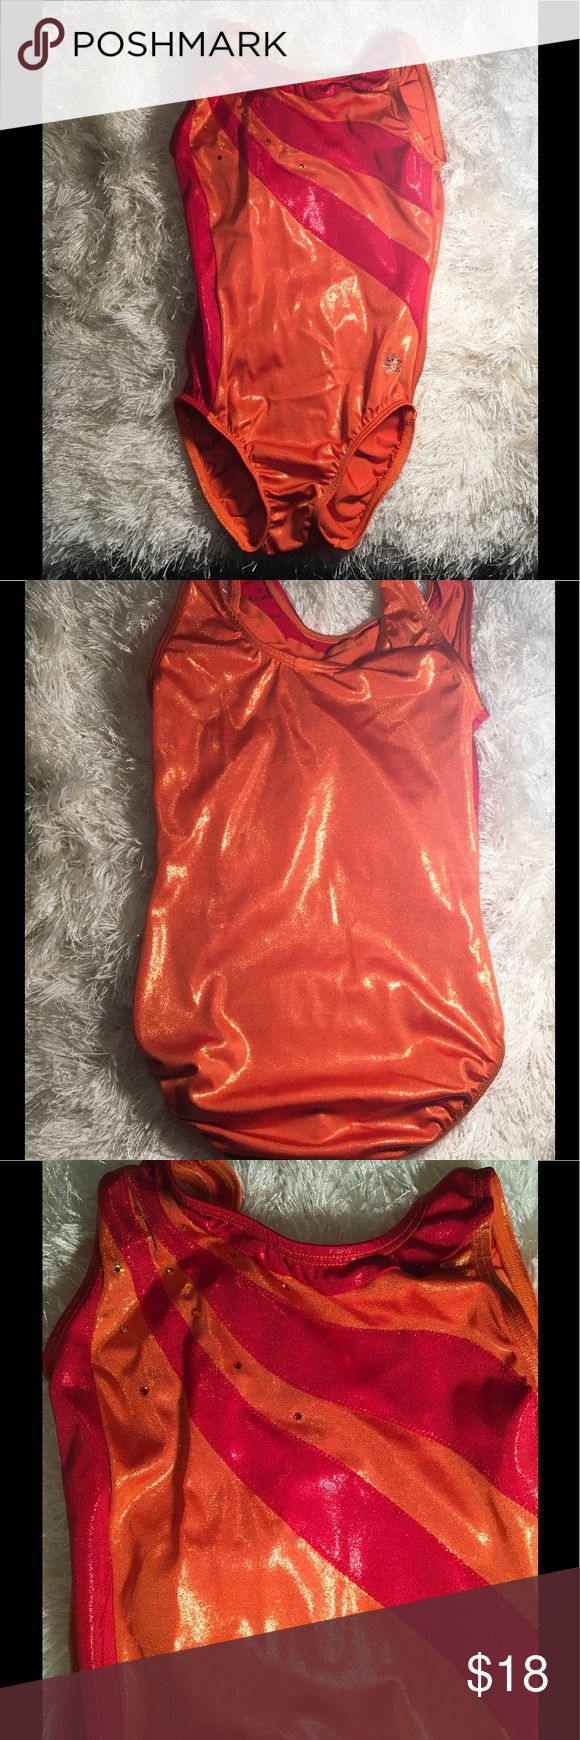 Girls Leotard Child's Large Snowflake leotard   Orange with red accents. Snowflake Other